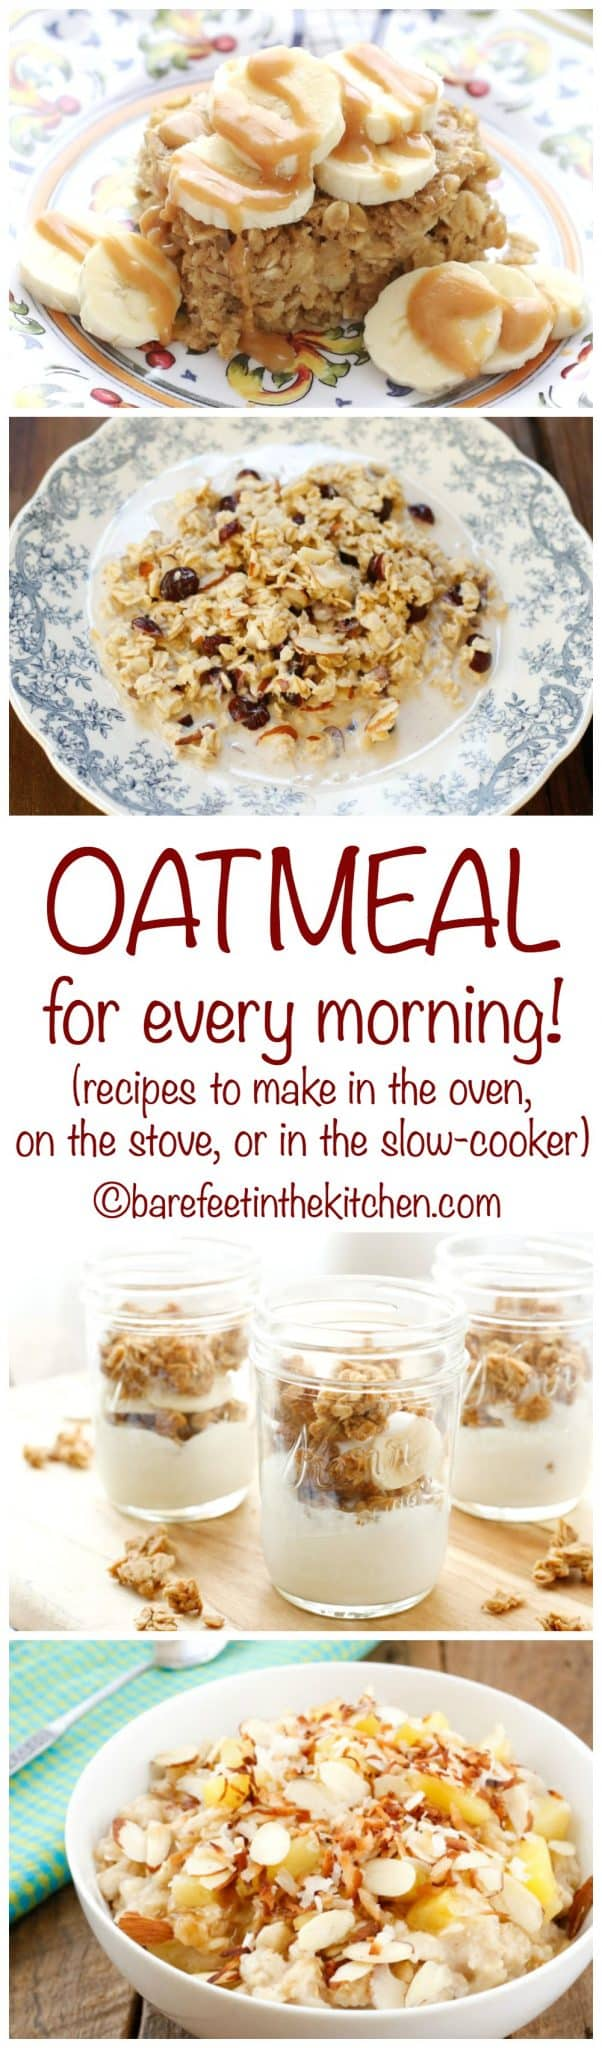 Oatmeal Recipes for every day! Baked oatmeal, slow cooker oatmeal, and stove-top oatmeal recipes included at barefeetinthekitchen.com